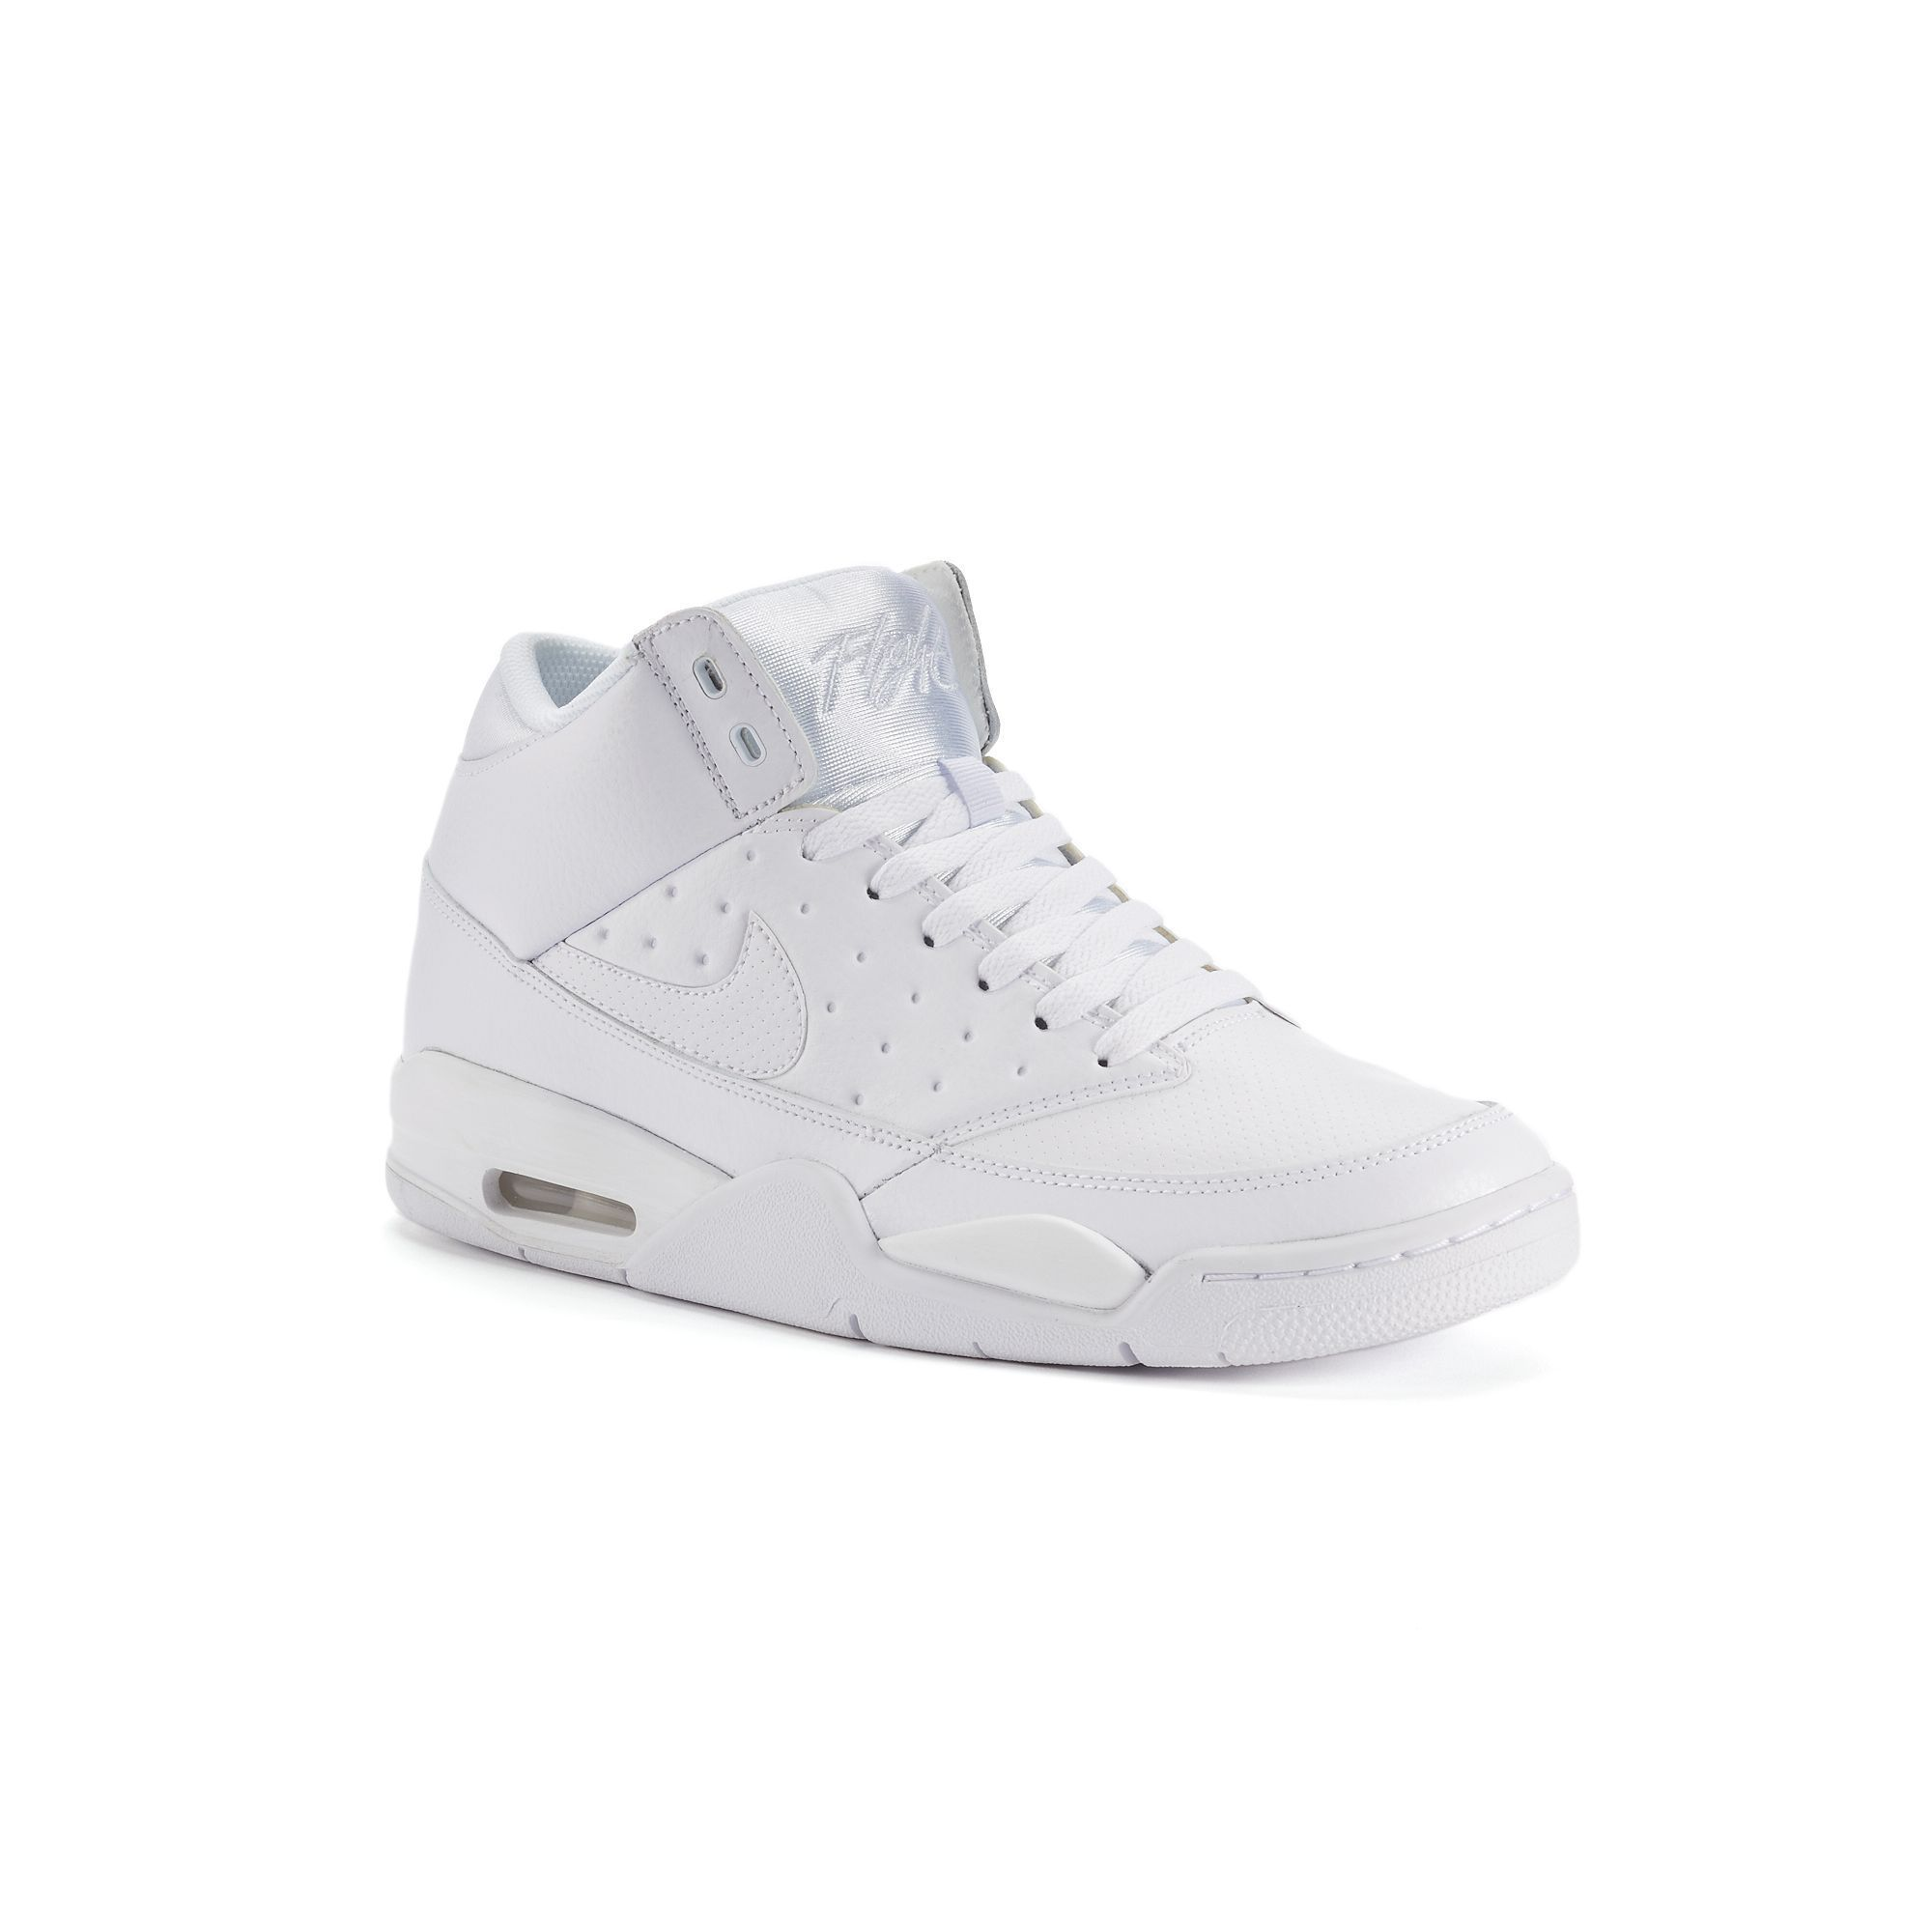 quality design 72ed8 f7091 Nike Air Flight Classic Men s Basketball Shoes, Size  11.5, White Oth